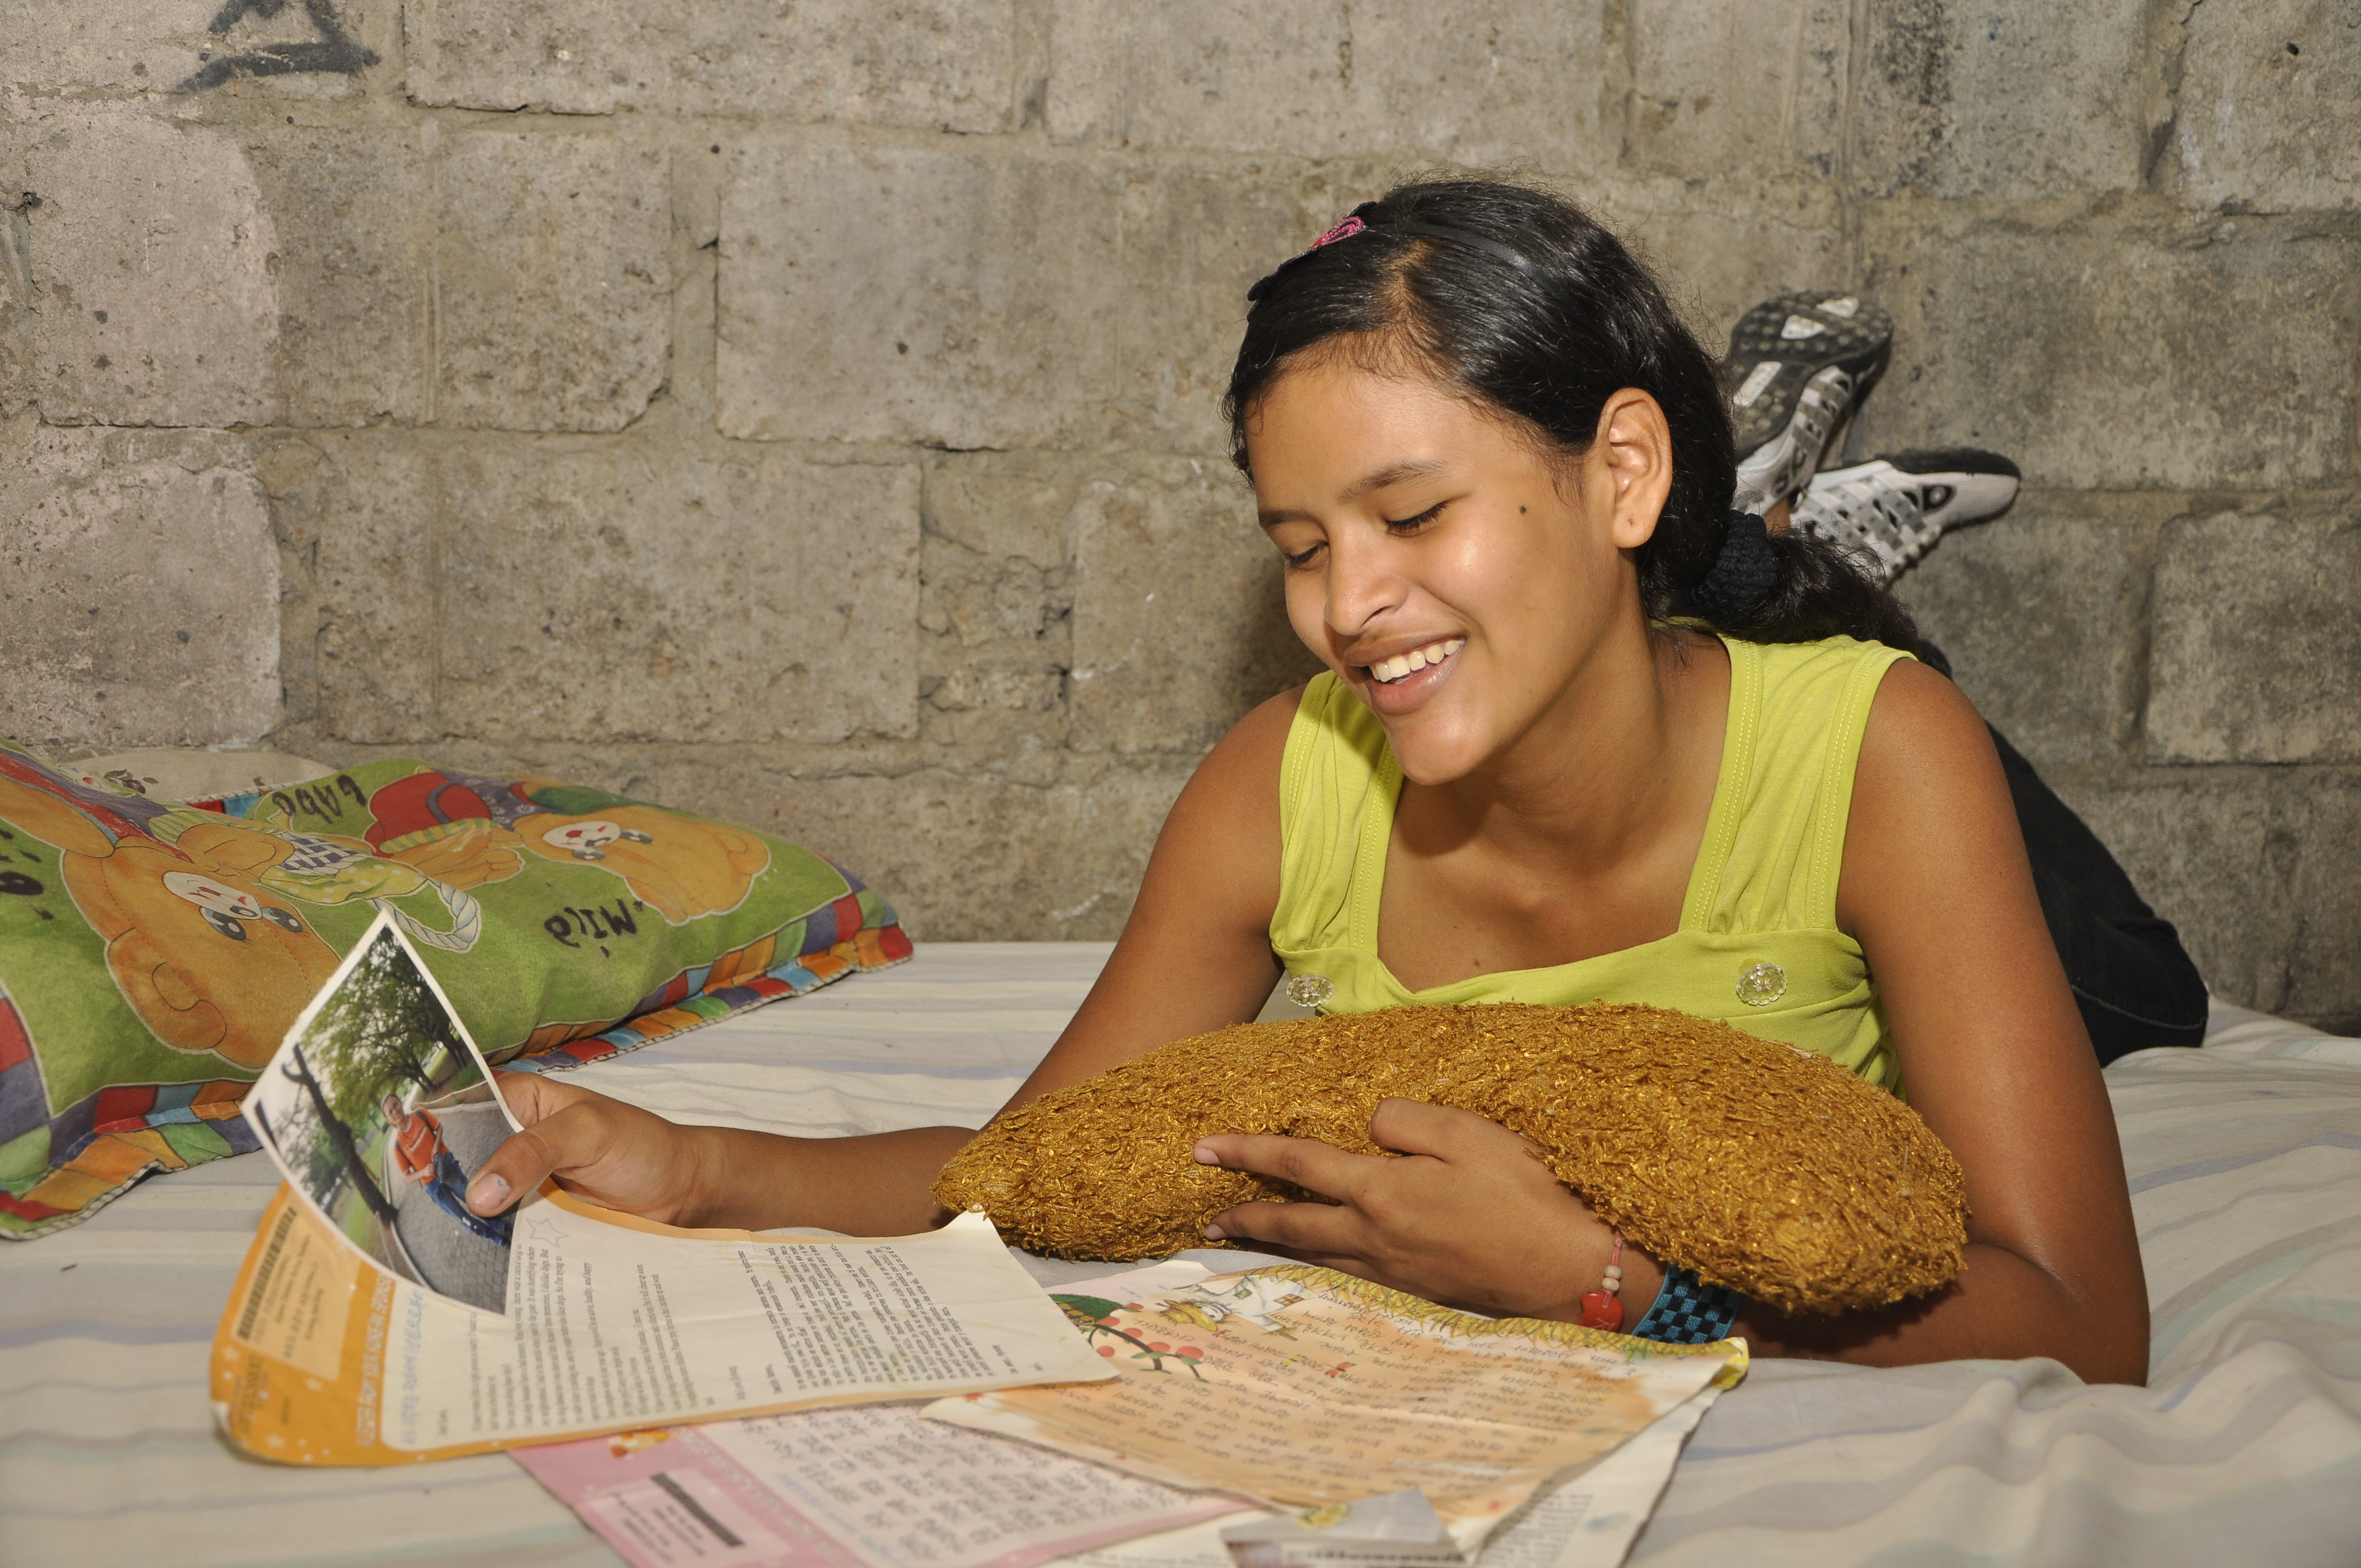 Karen smiles reading sponsor letters and holding picture